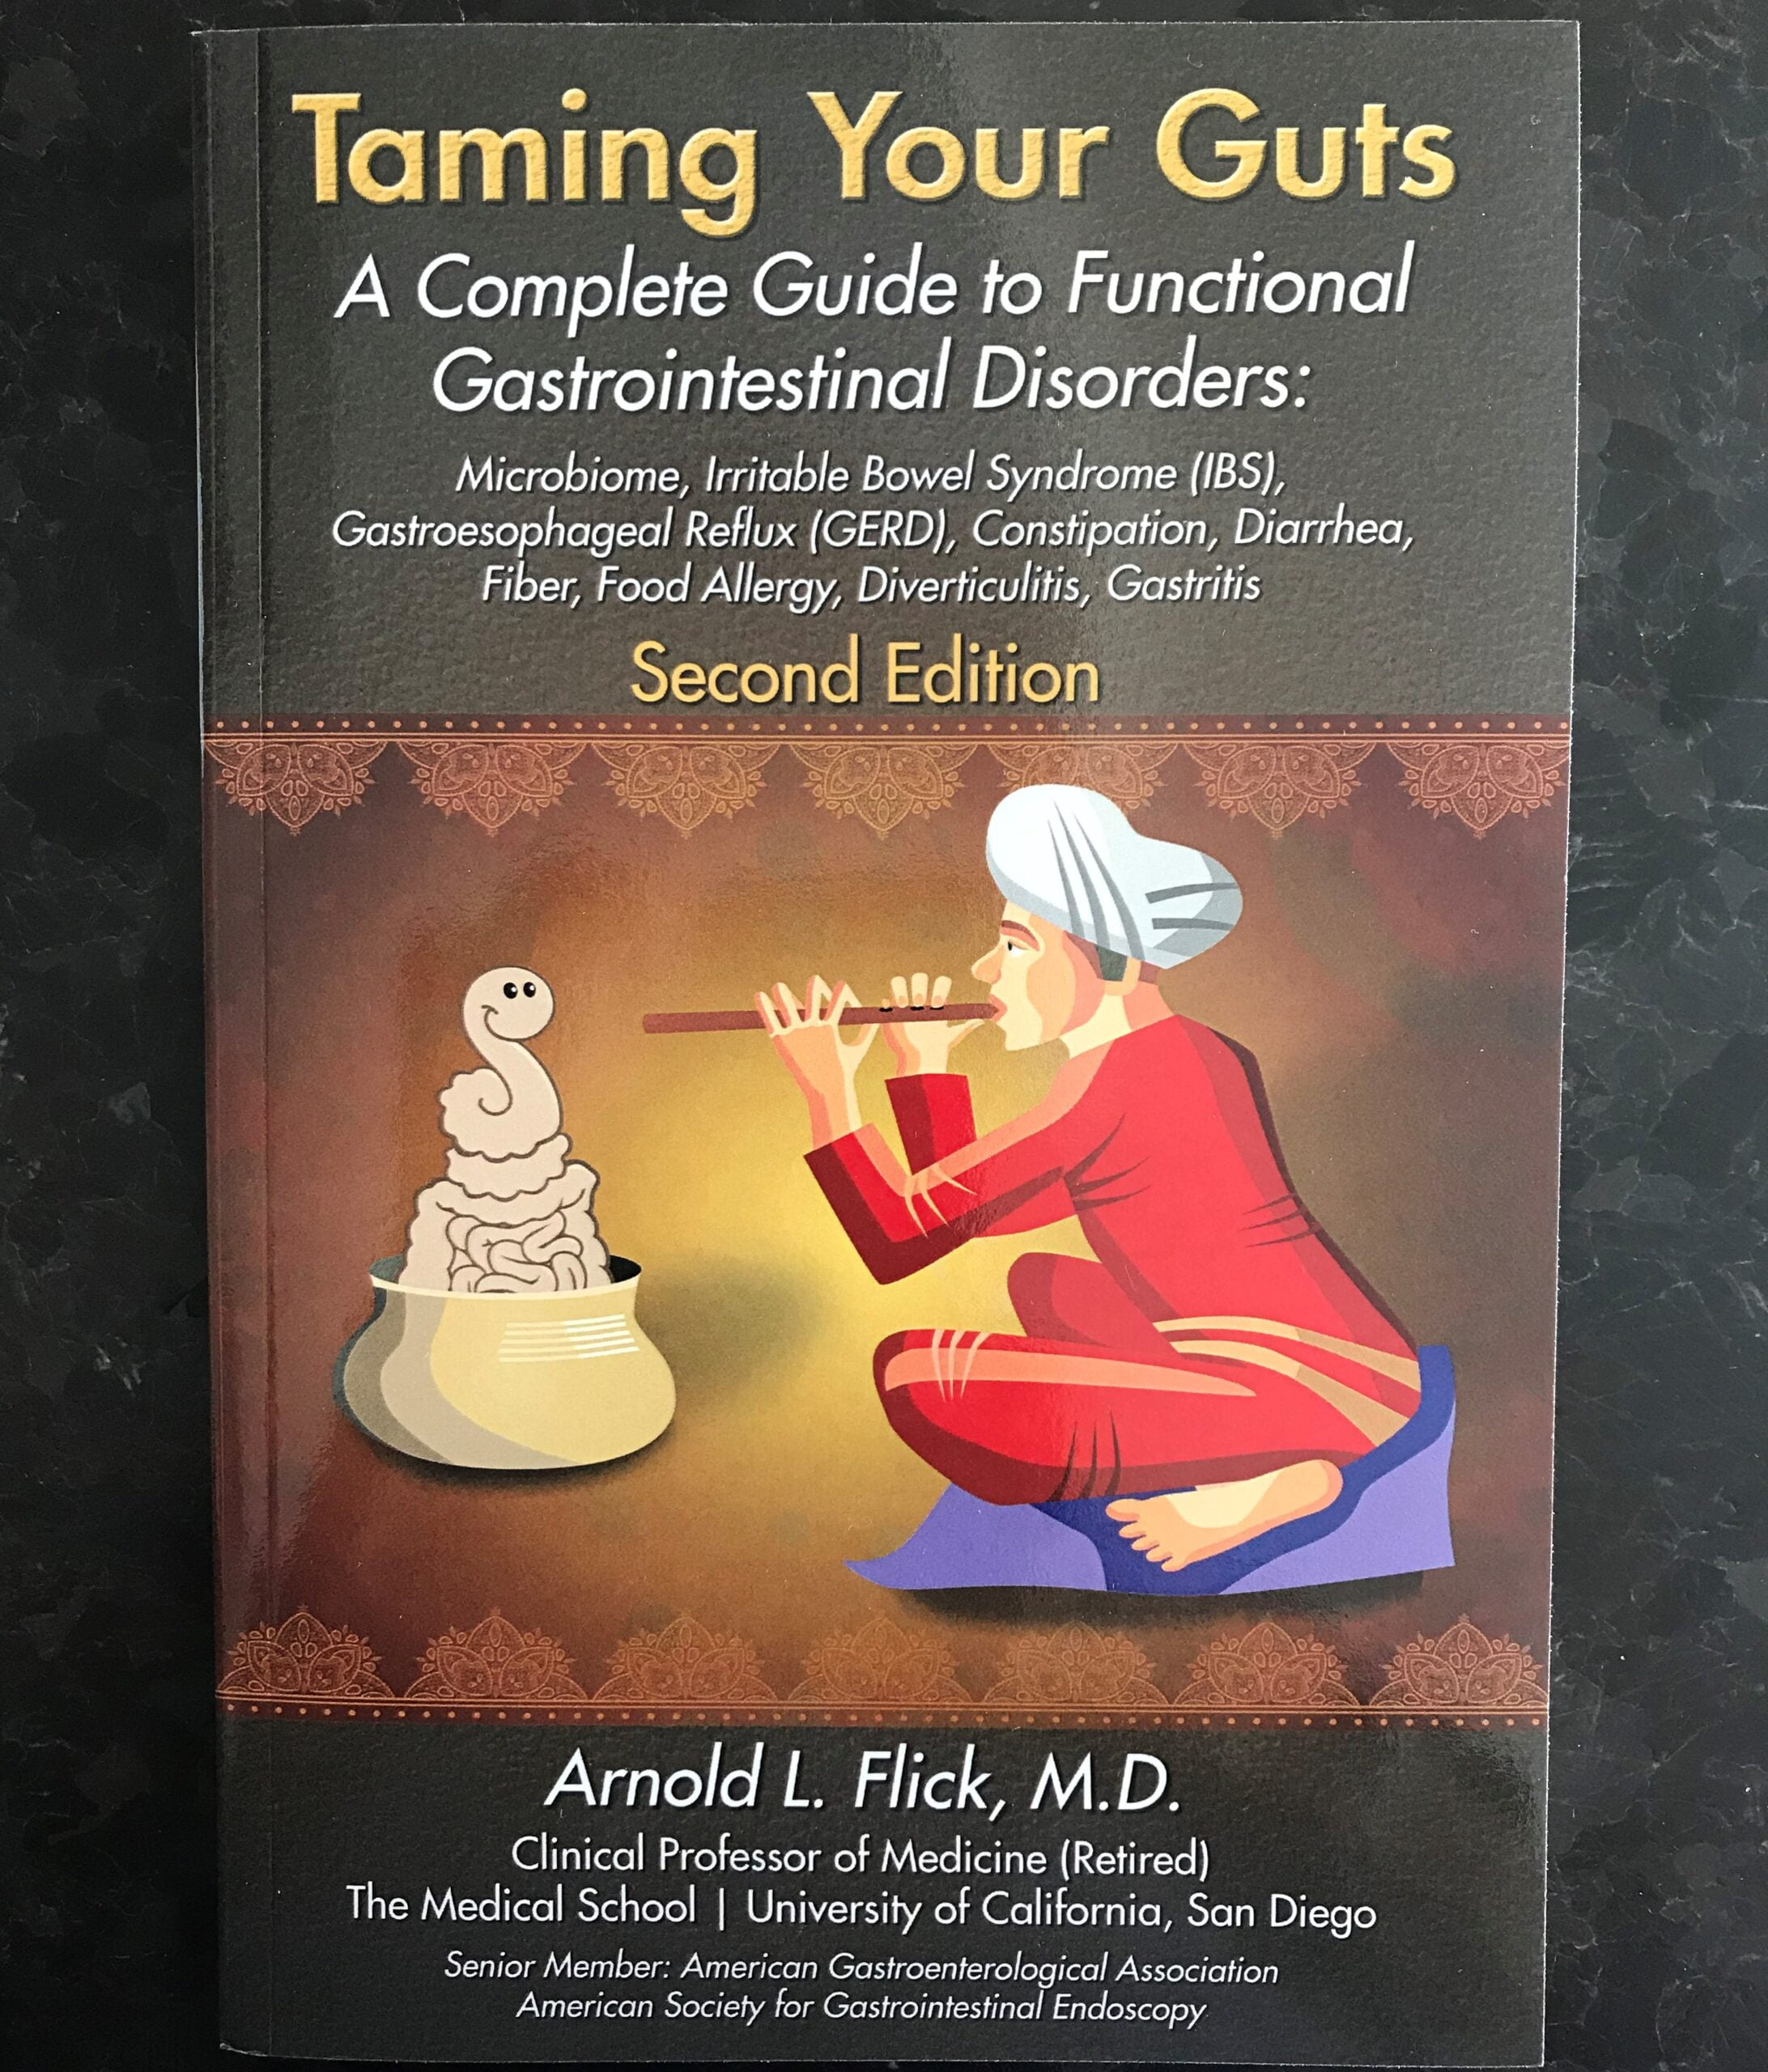 'Taming Your Guts':  Arnold Flick's Book on Functional Digestive Problems and the Irritable Bowel Syndrome is a New and Practical Guide for Self Help